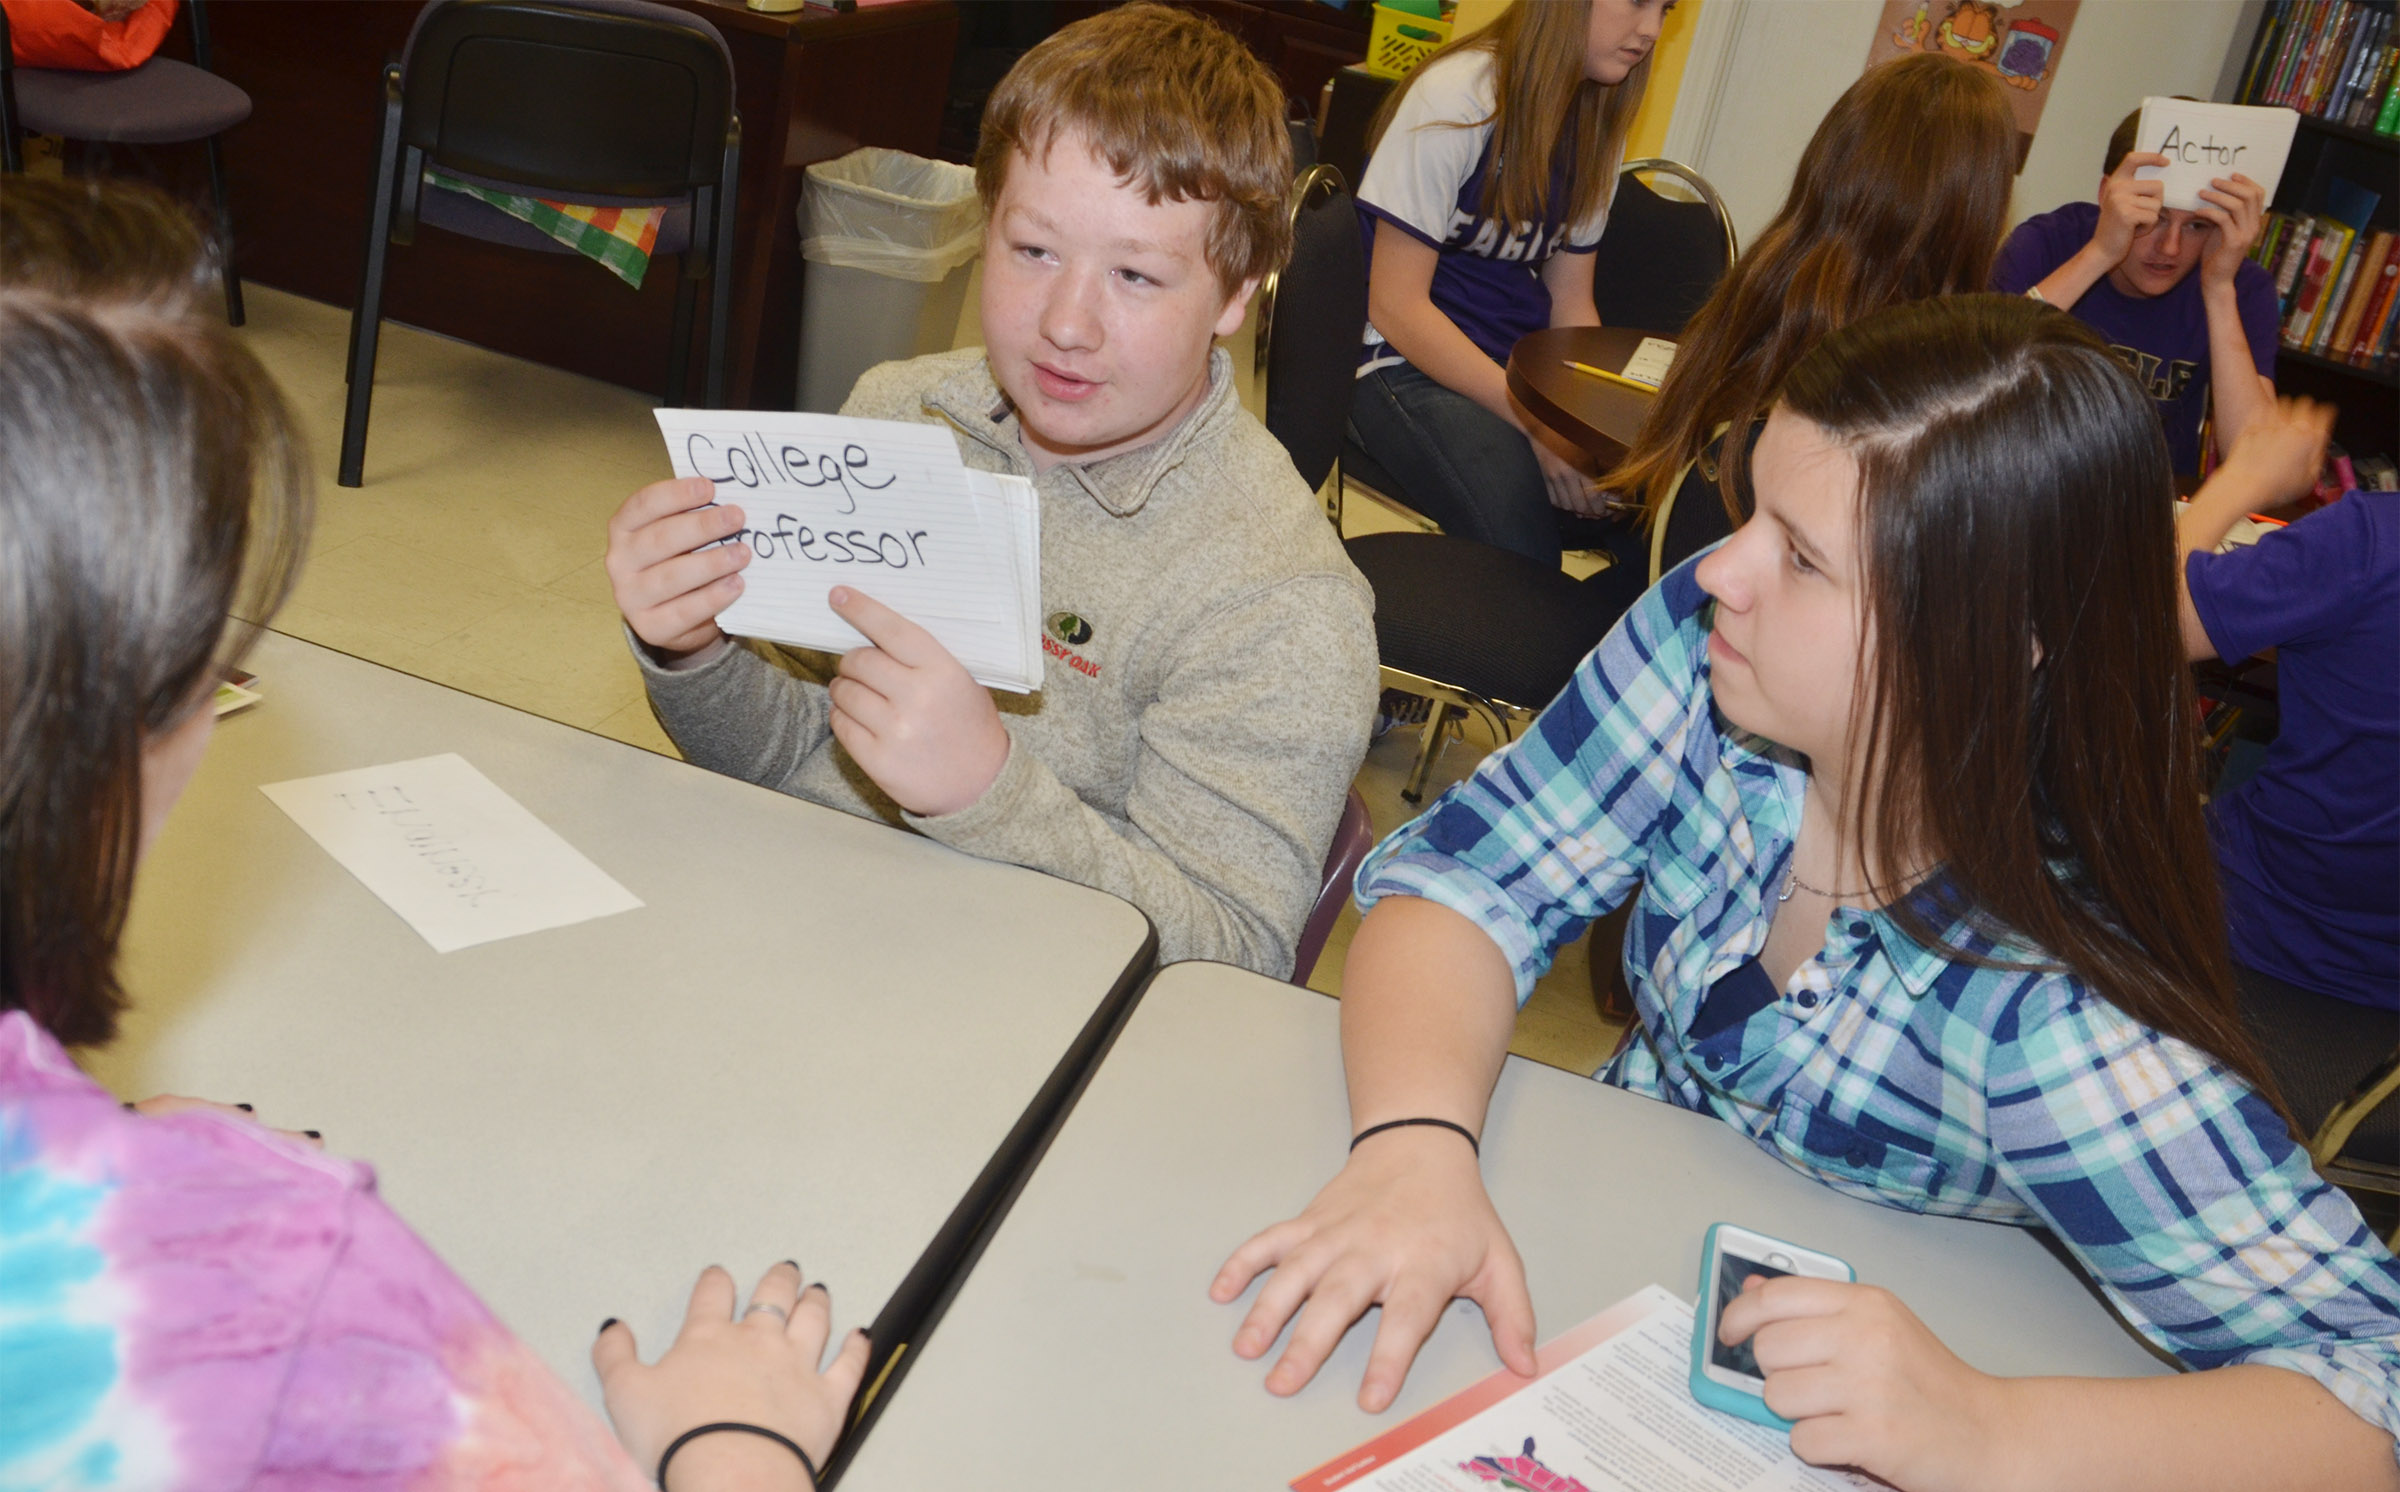 CMS eighth-grader Ryan Milburn tires to guess which career his classmates are giving him clues about.